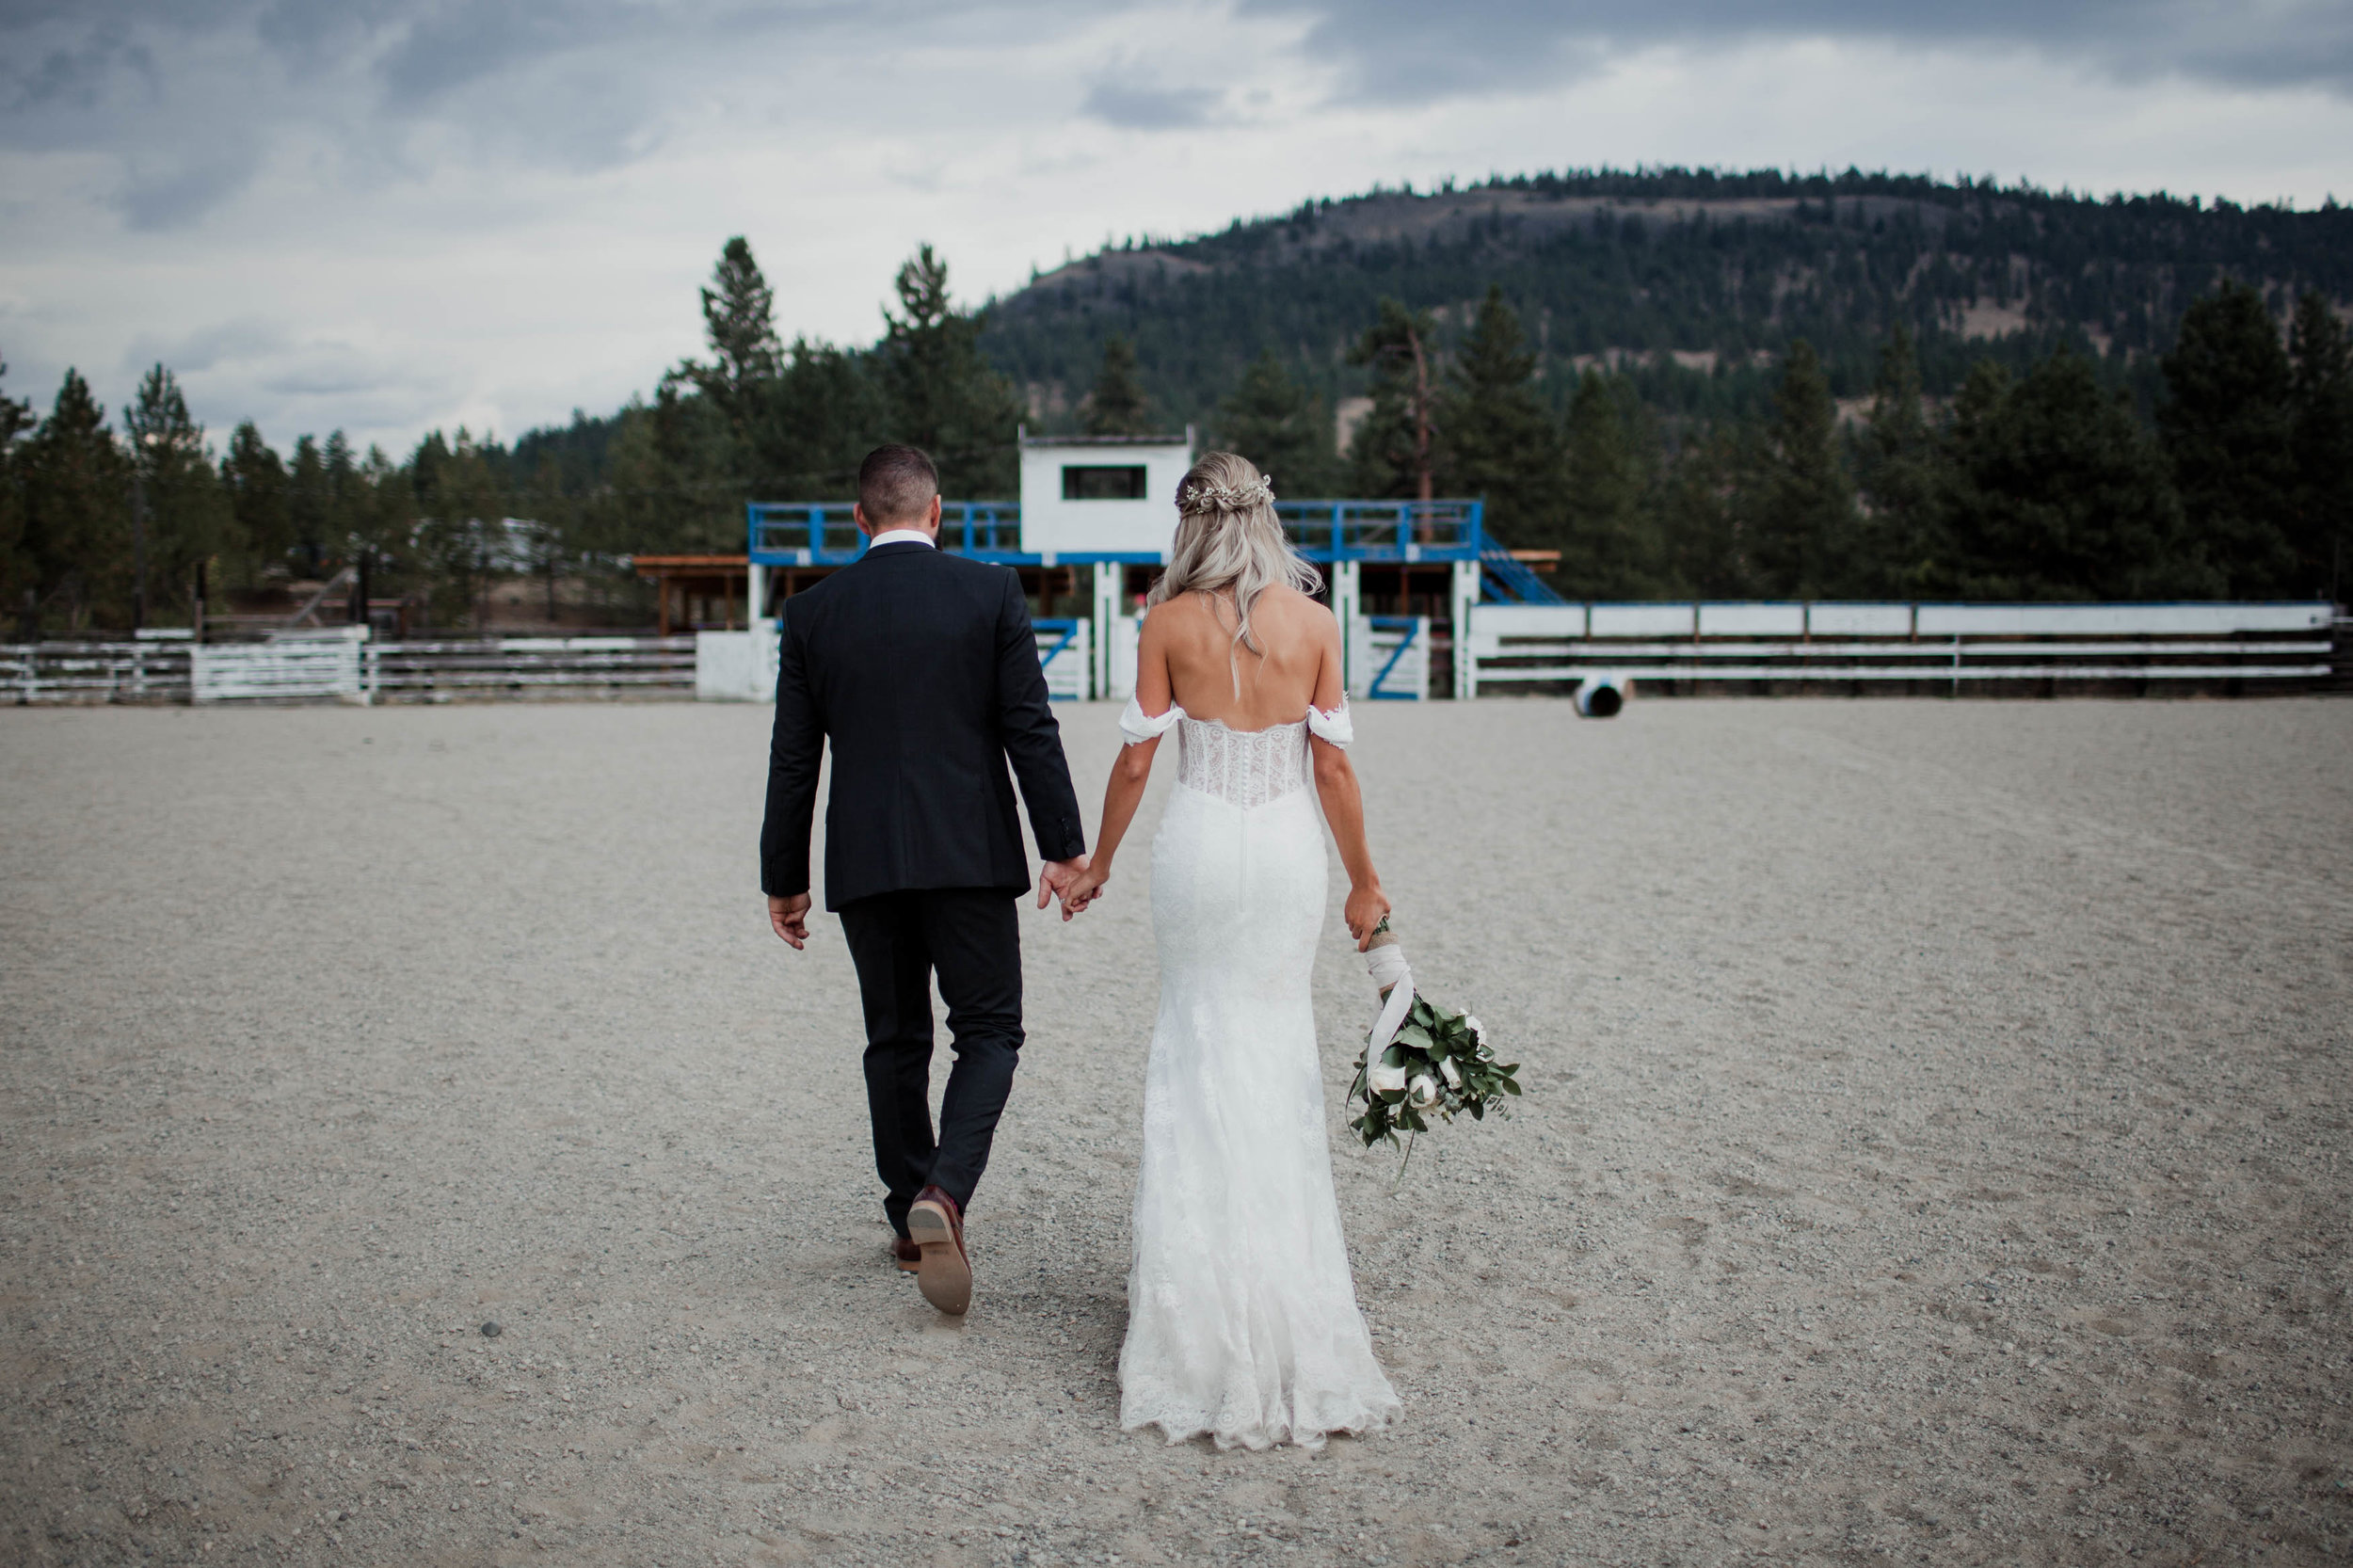 summerlandweddingphotography-74.jpg